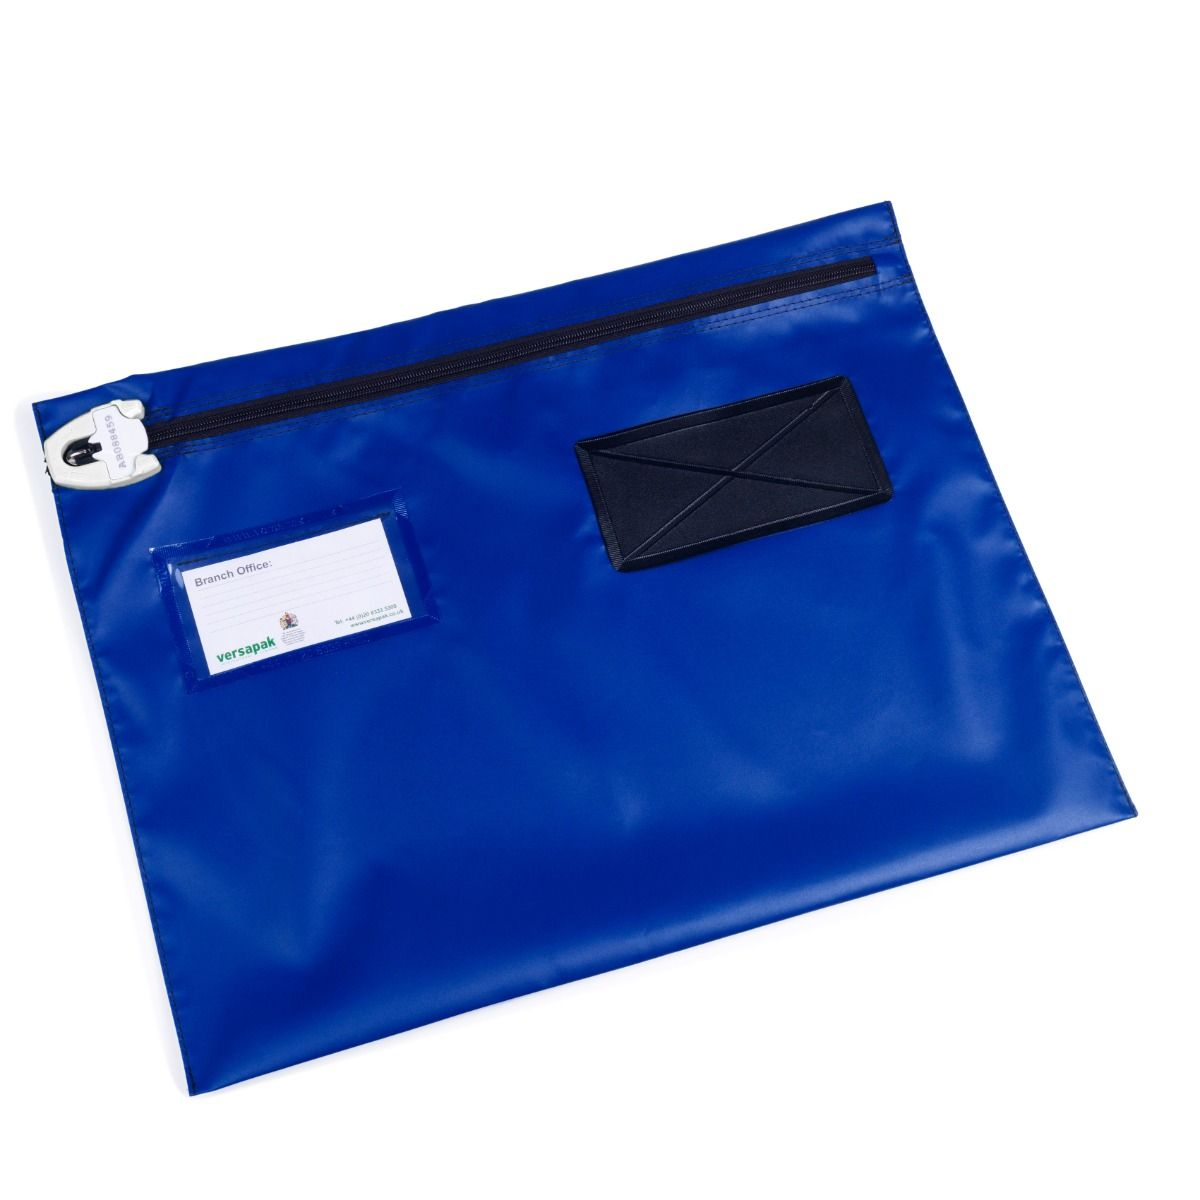 Large Document Wallet - Wide Opening